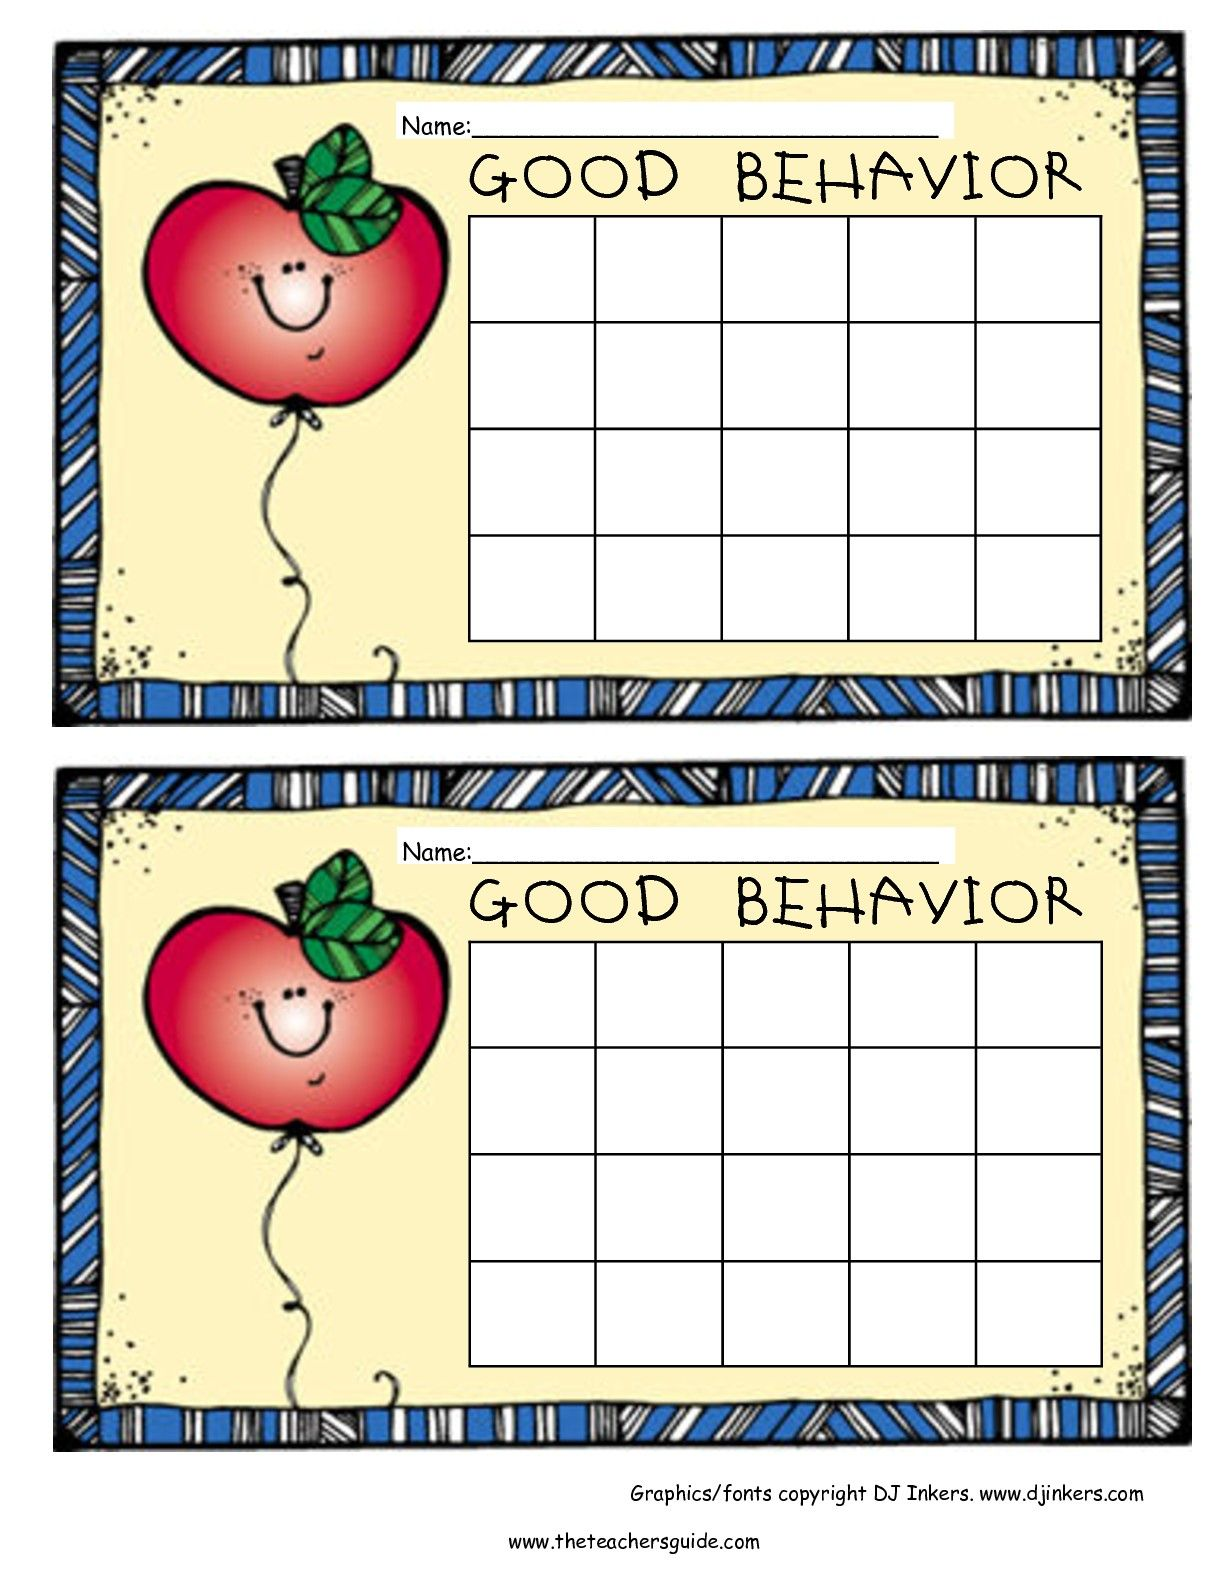 Free Behavior Charts Lovetoknow Weekly Point Charts Are A Great Way To Reinforce Daily Positive Behavio Incentive Chart Sticker Chart Behavior Sticker Chart